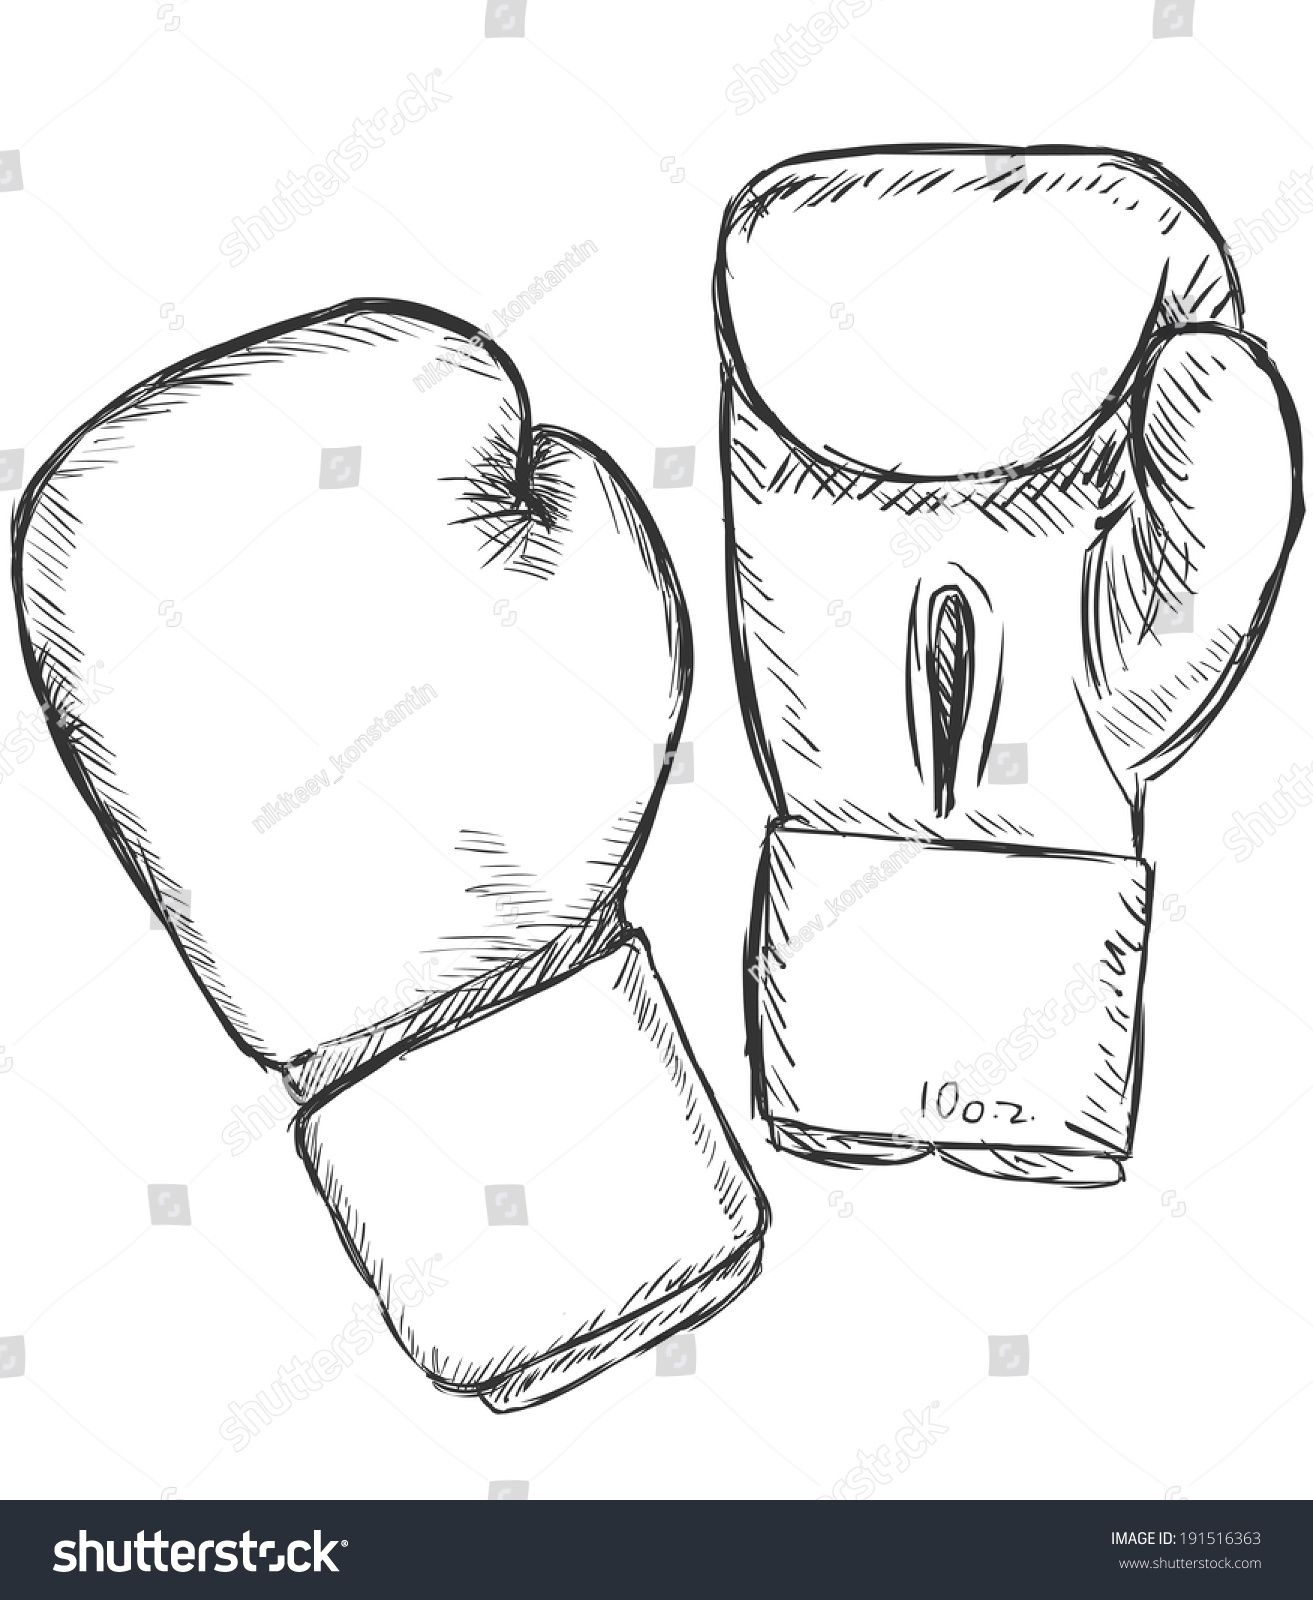 Vector Sketch Boxing Gloves Ad Affiliate Sketch Vector Gloves Boxing Boxing Gloves Sketch Vector Sketch Photoshop